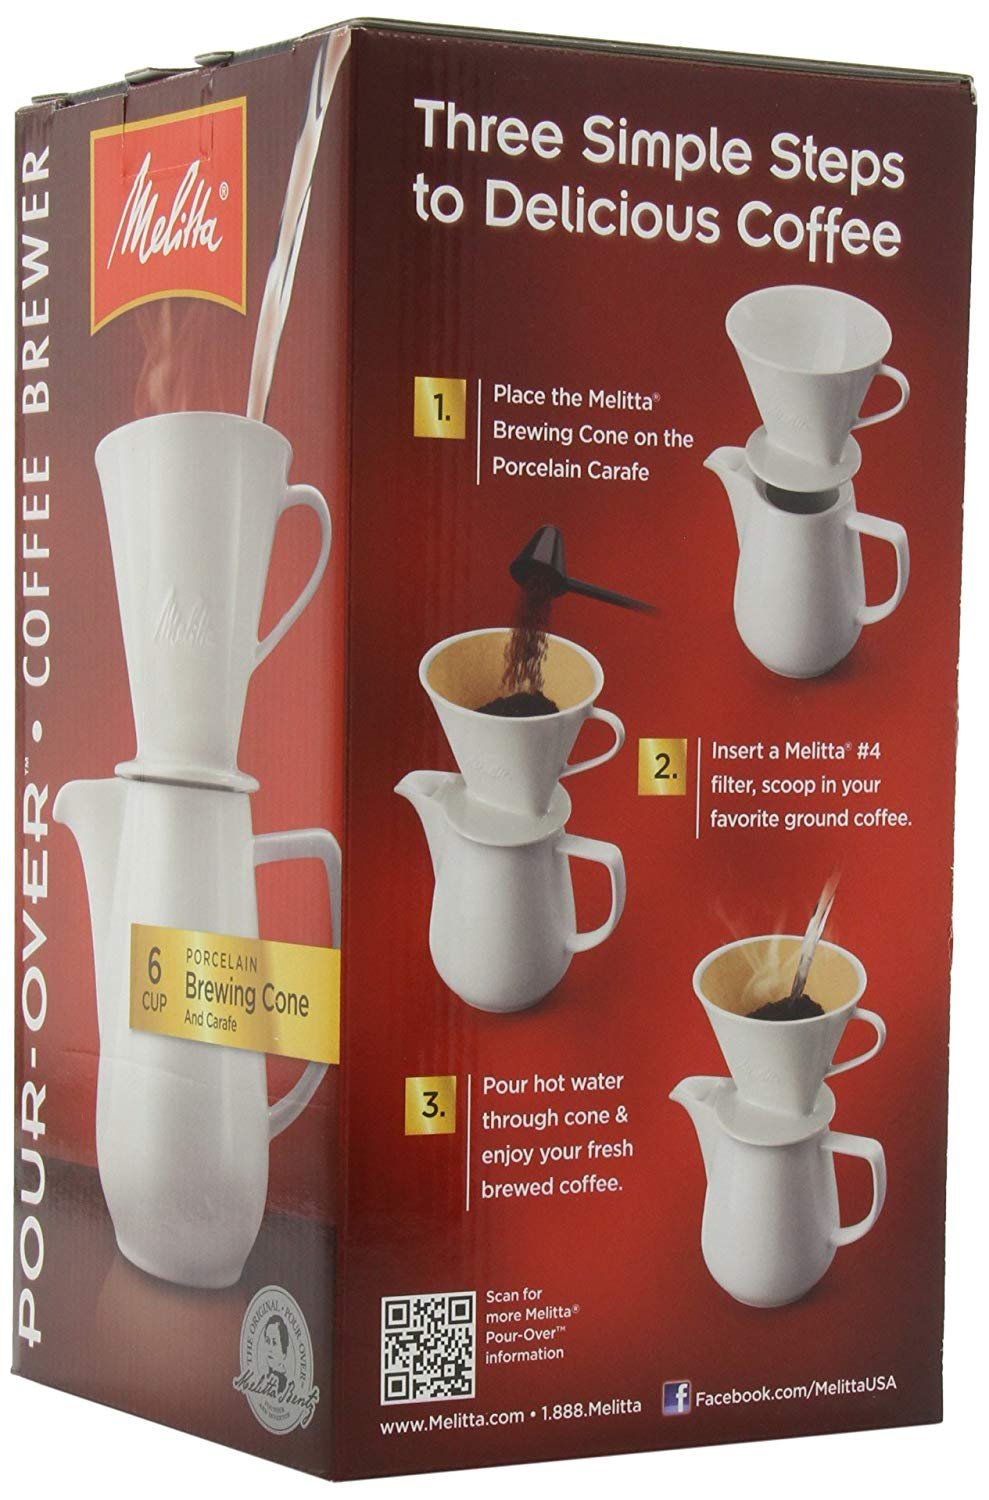 Melitta coffee maker, porcelain 6 cup pour over brewer